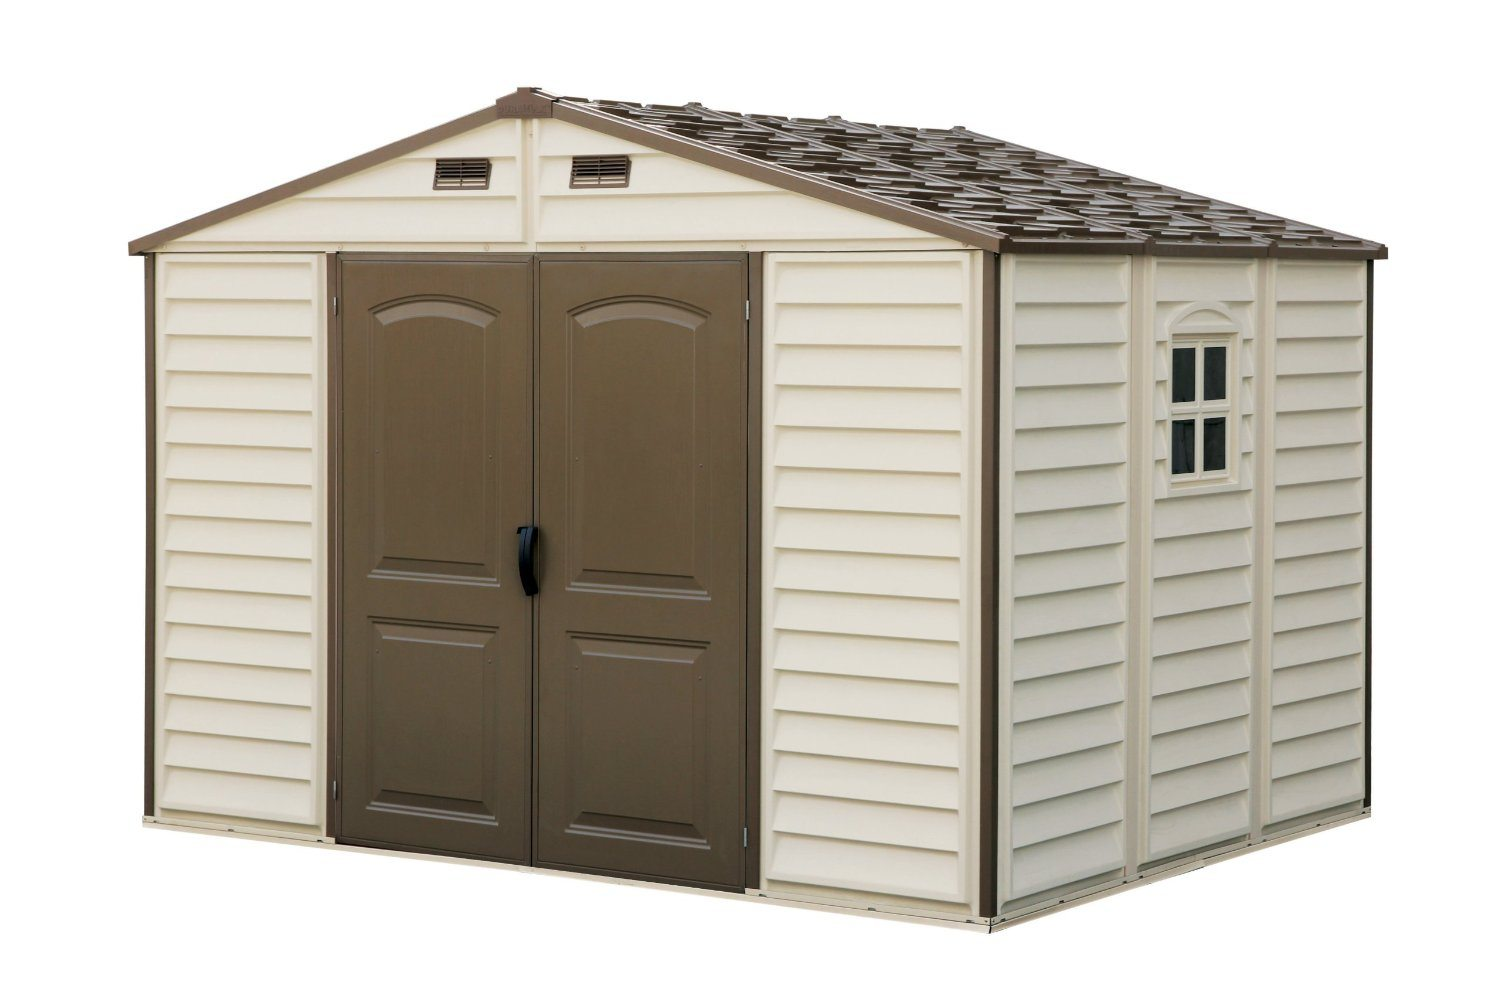 Best shed reviews uk 2018 shed buying tips man in the shed for Best shed company